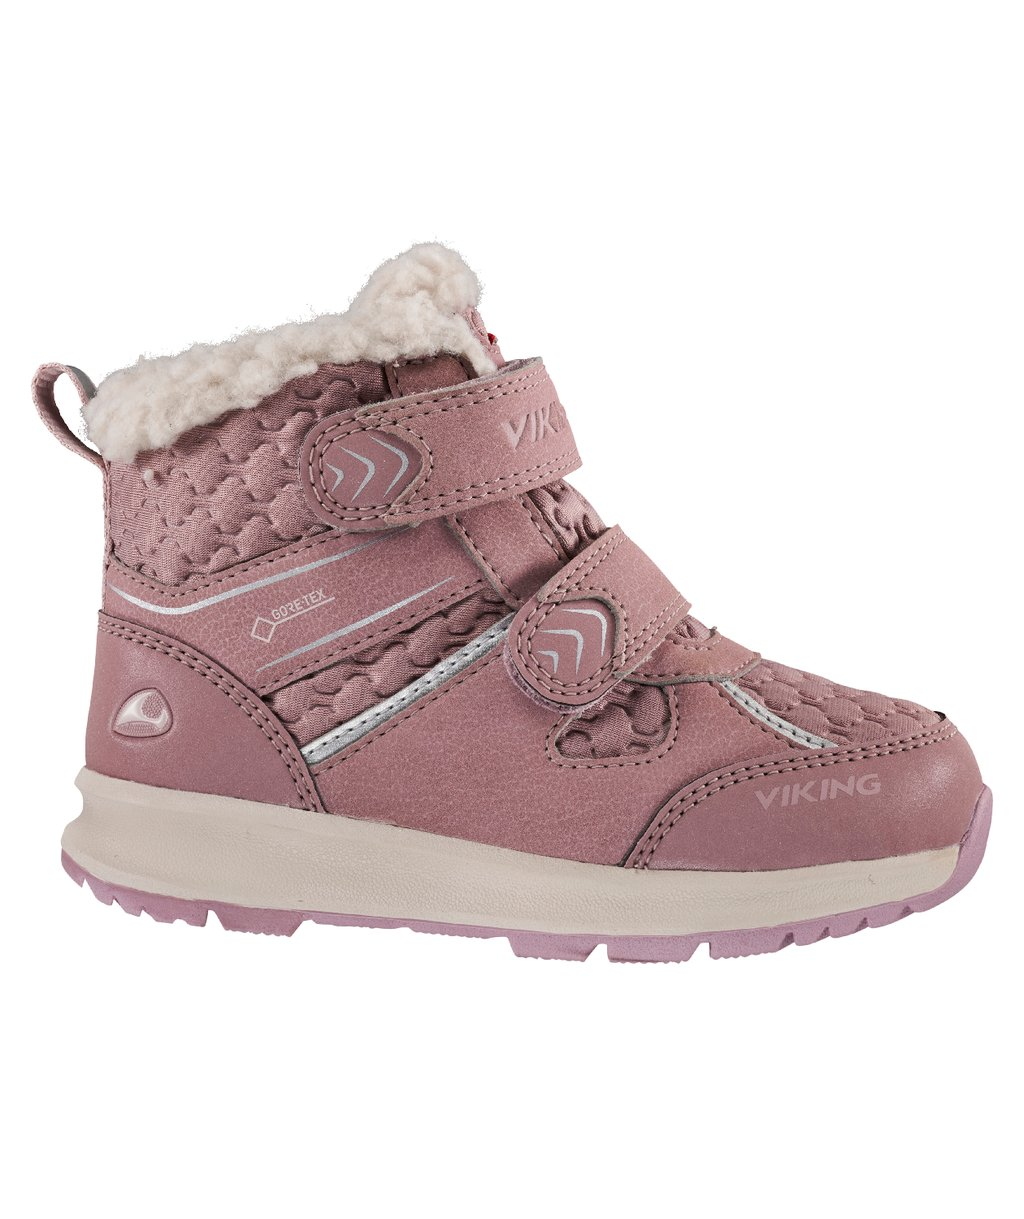 Viking Sophie R GTX Winterstiefel für Kinder, Dusty Pink